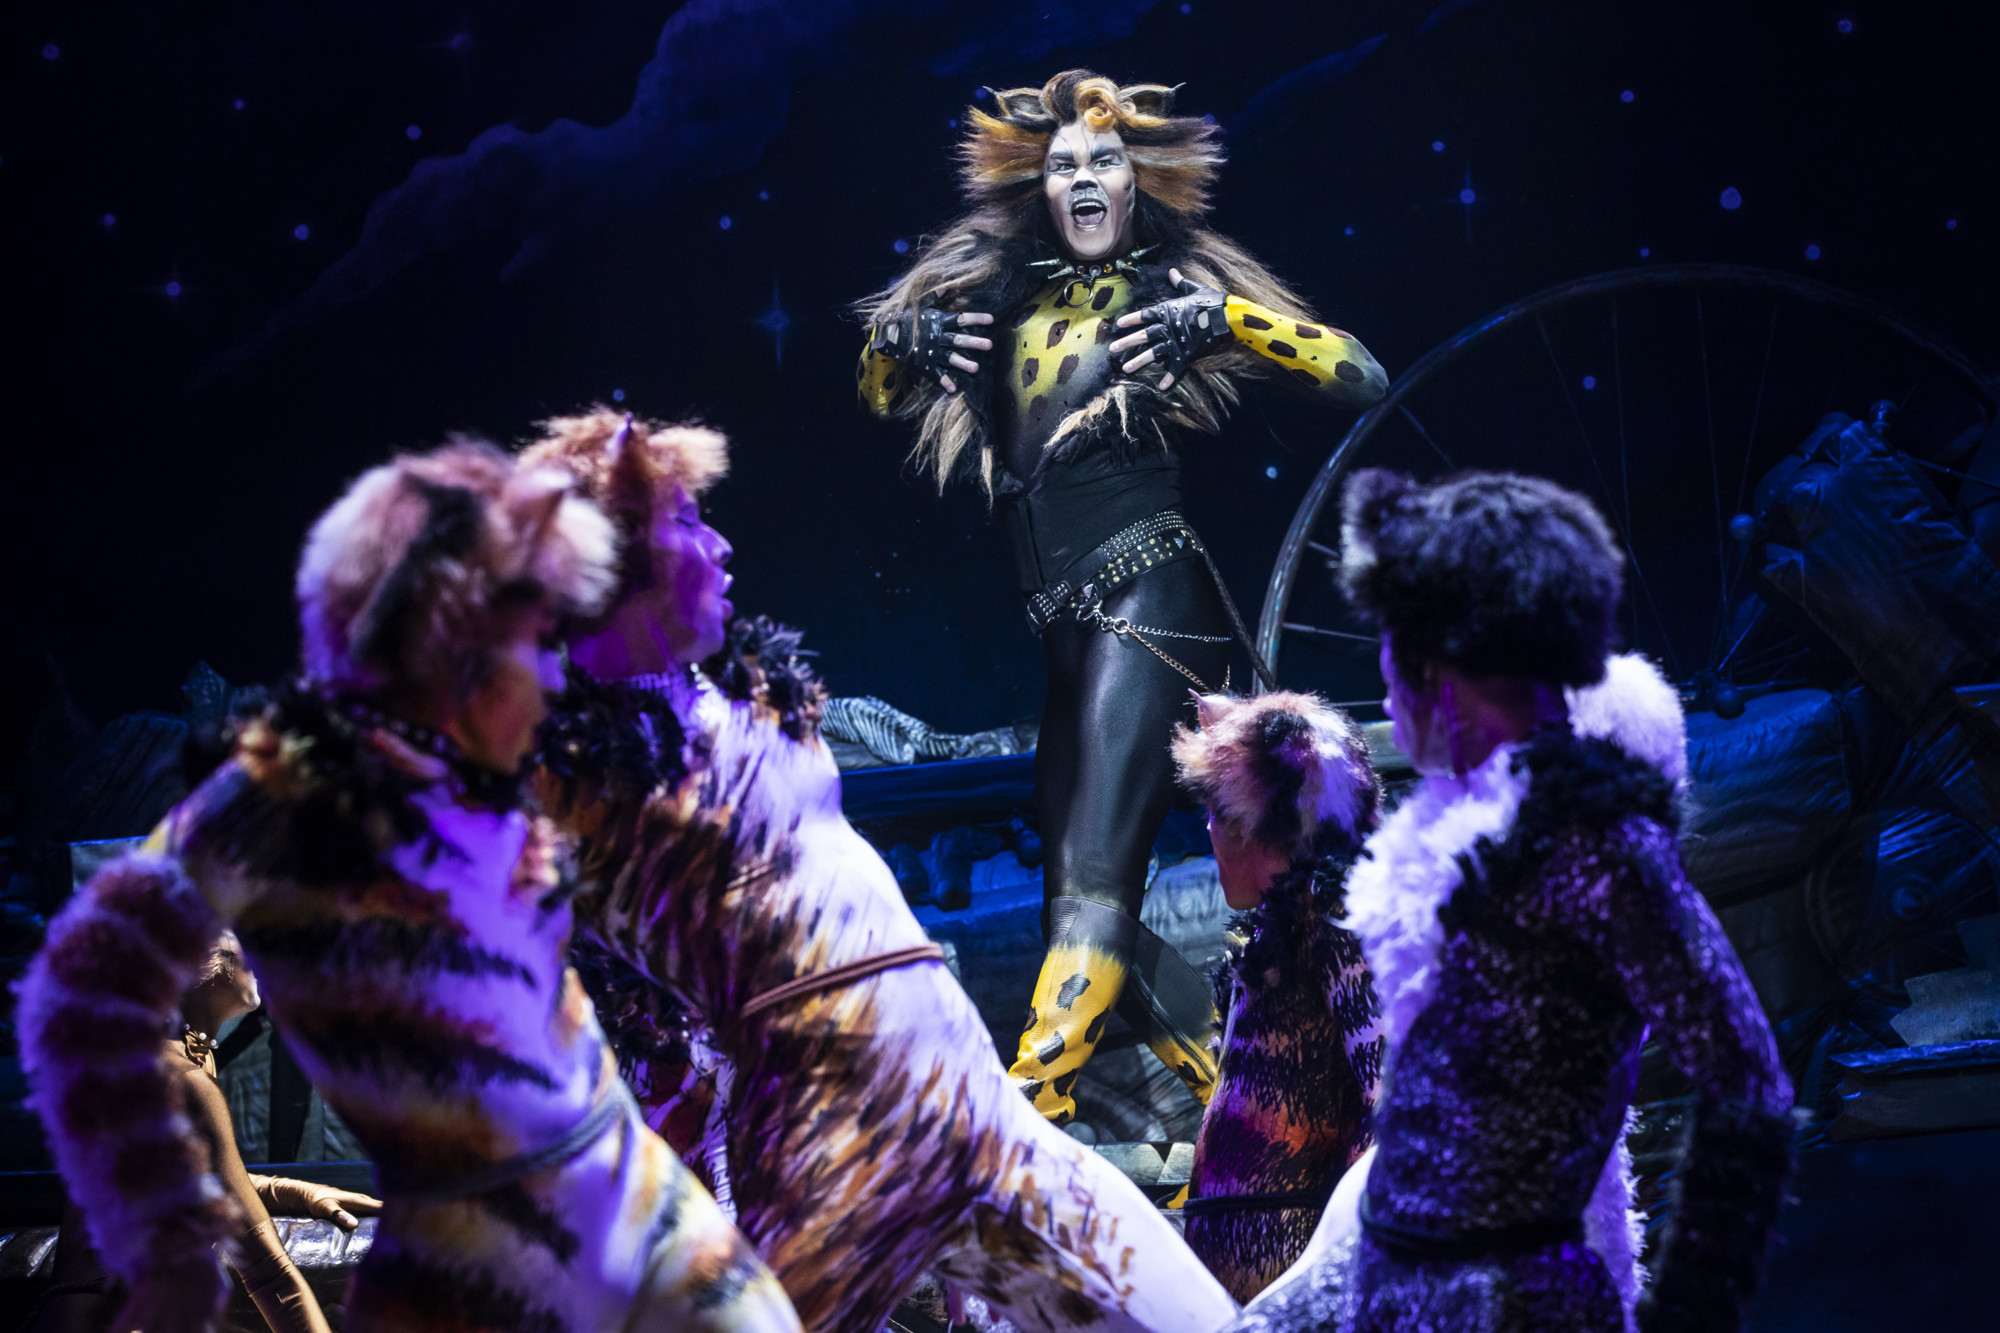 Before March comes in like a lion, 'Cats' comes to Pittsburgh in February. The touring production is among a cavalcade of musicals during the month. (photo: Matthew Murphy)